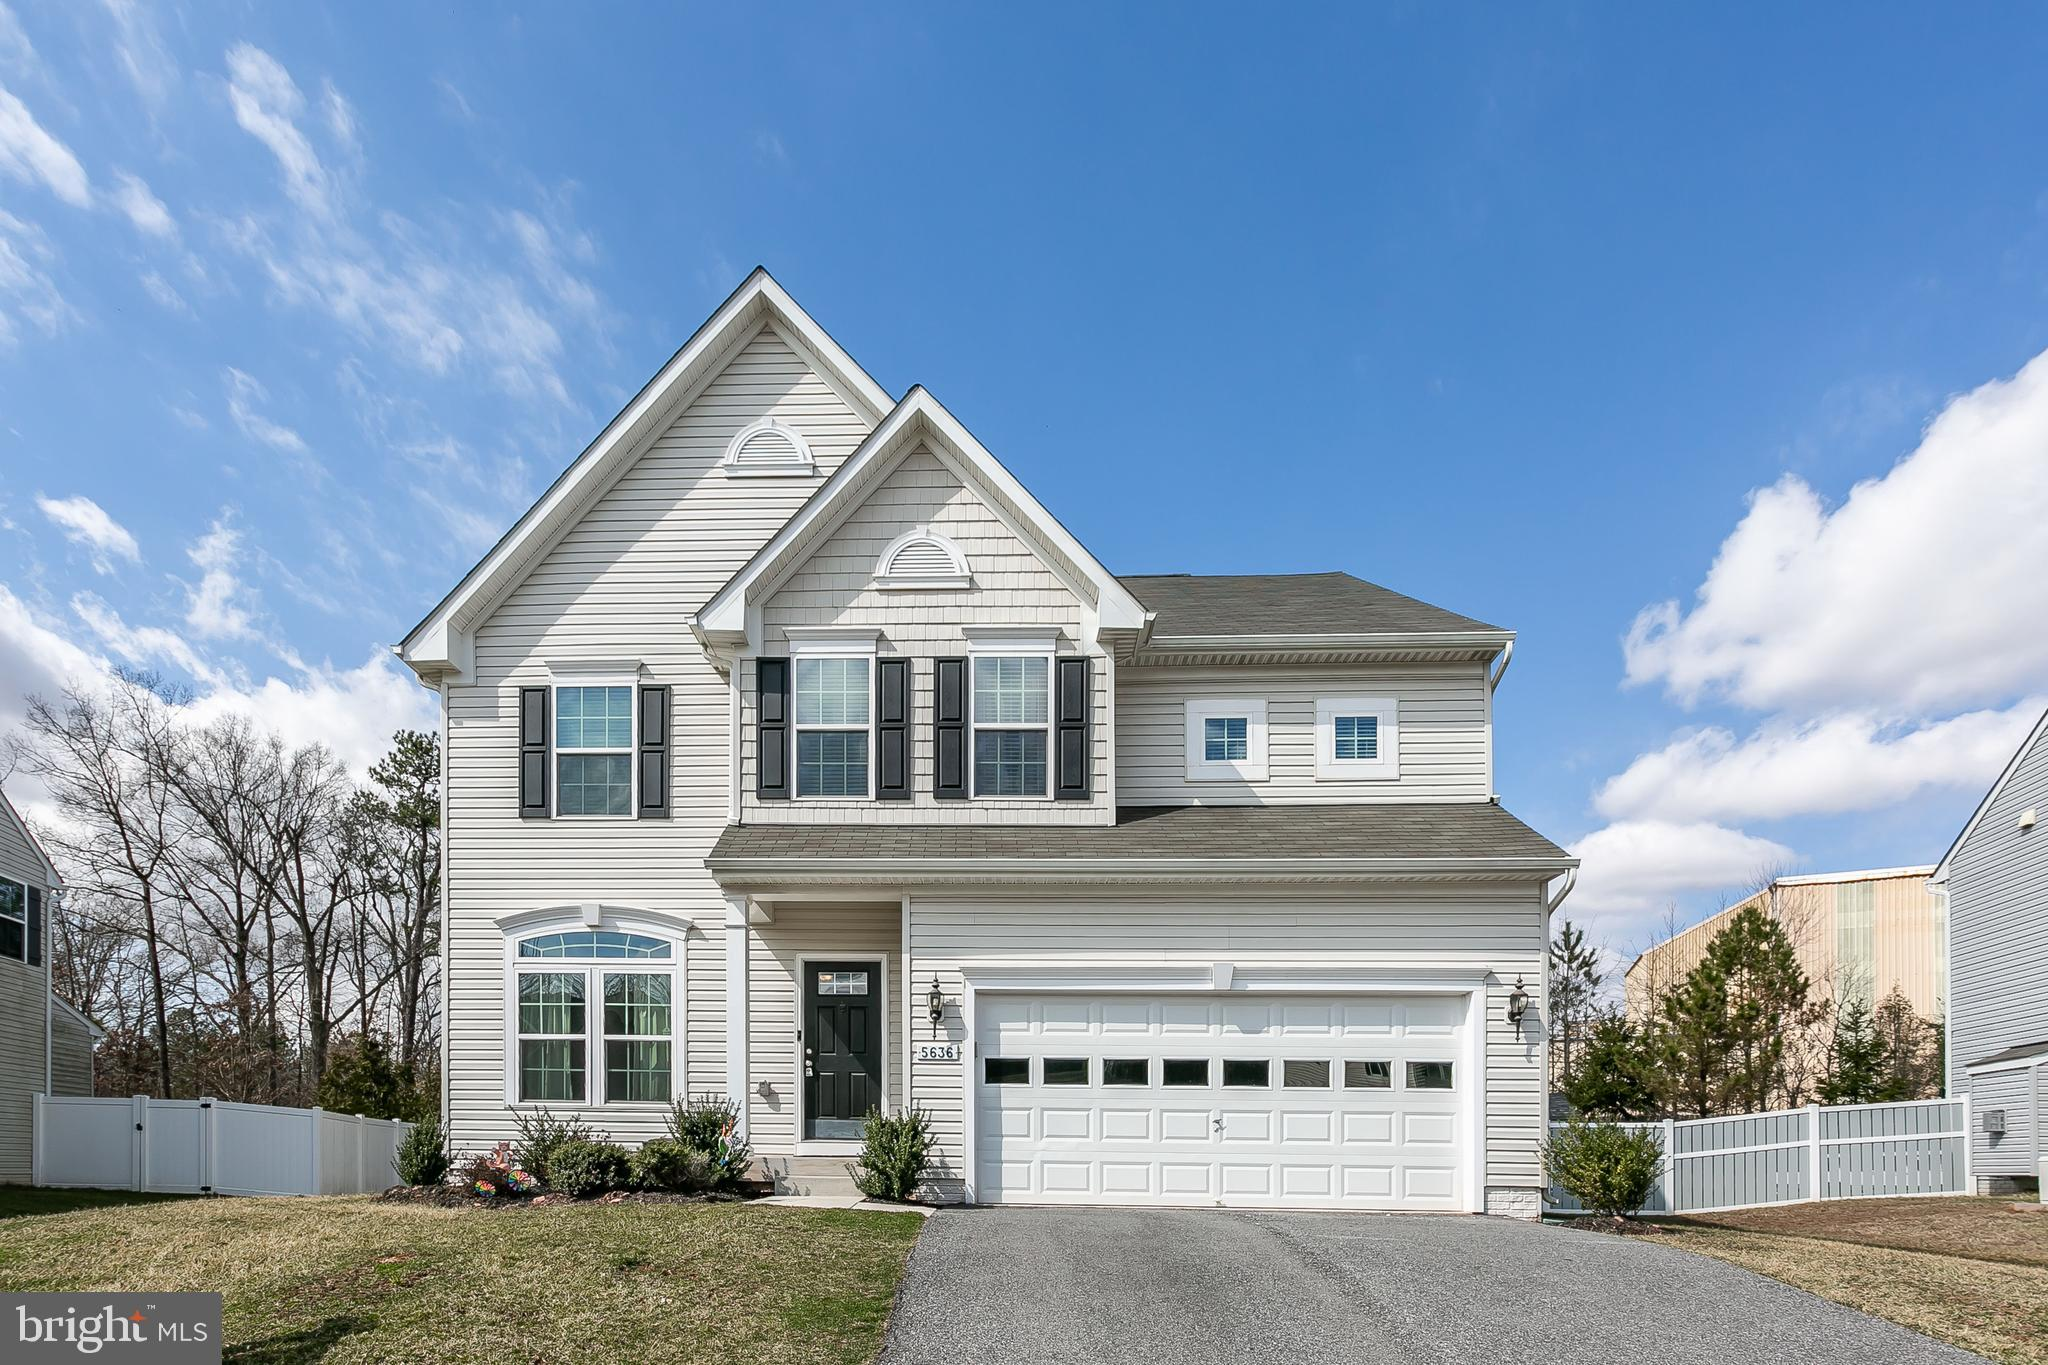 5636 COUNTRY FARM ROAD, WHITE MARSH, MD 21162